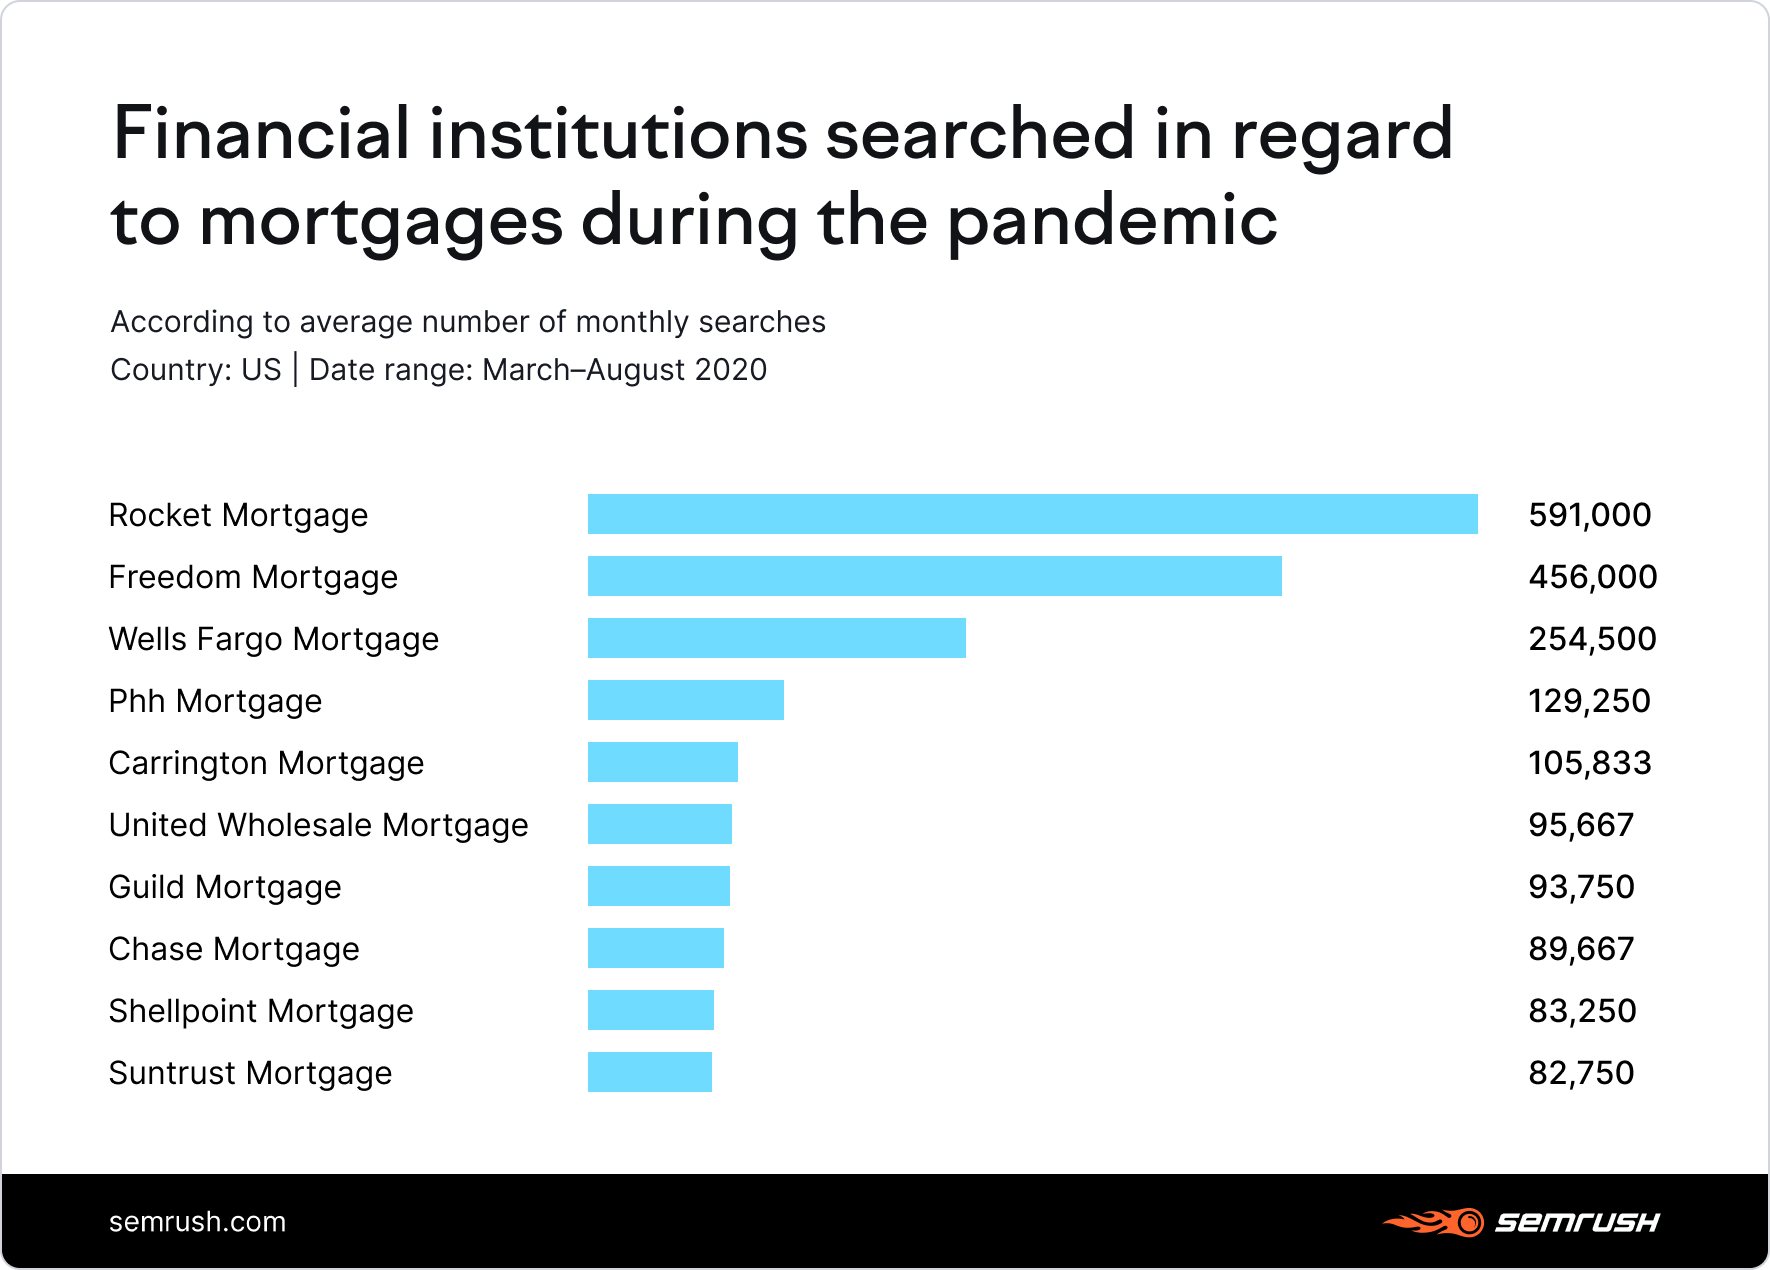 Financial institutions searched in regard to mortgages during the pandemic